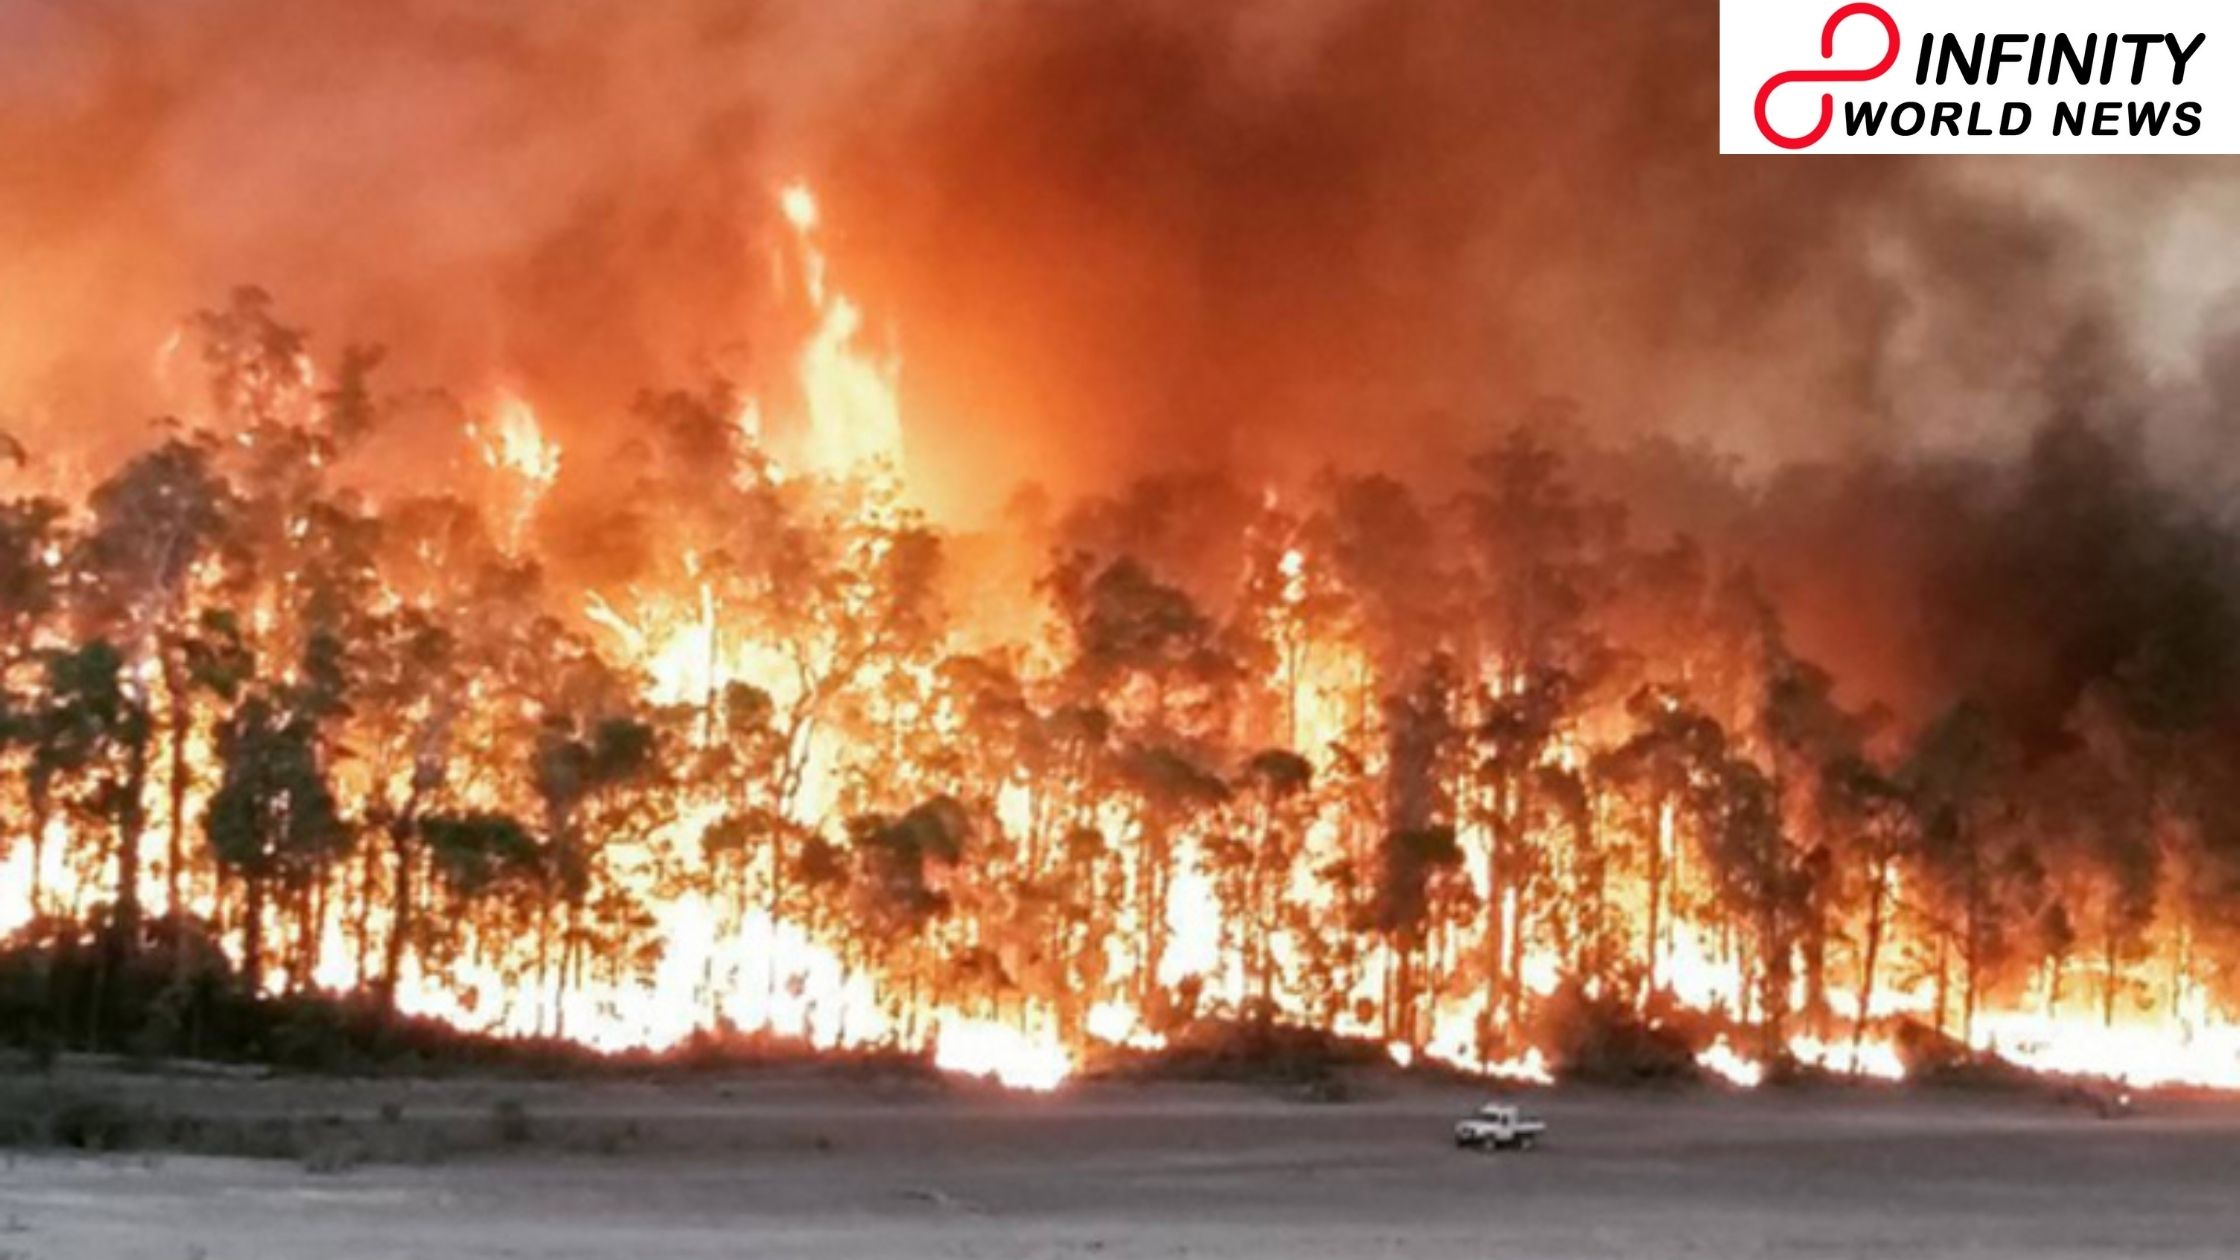 Bushfires within Australia to Become More Common